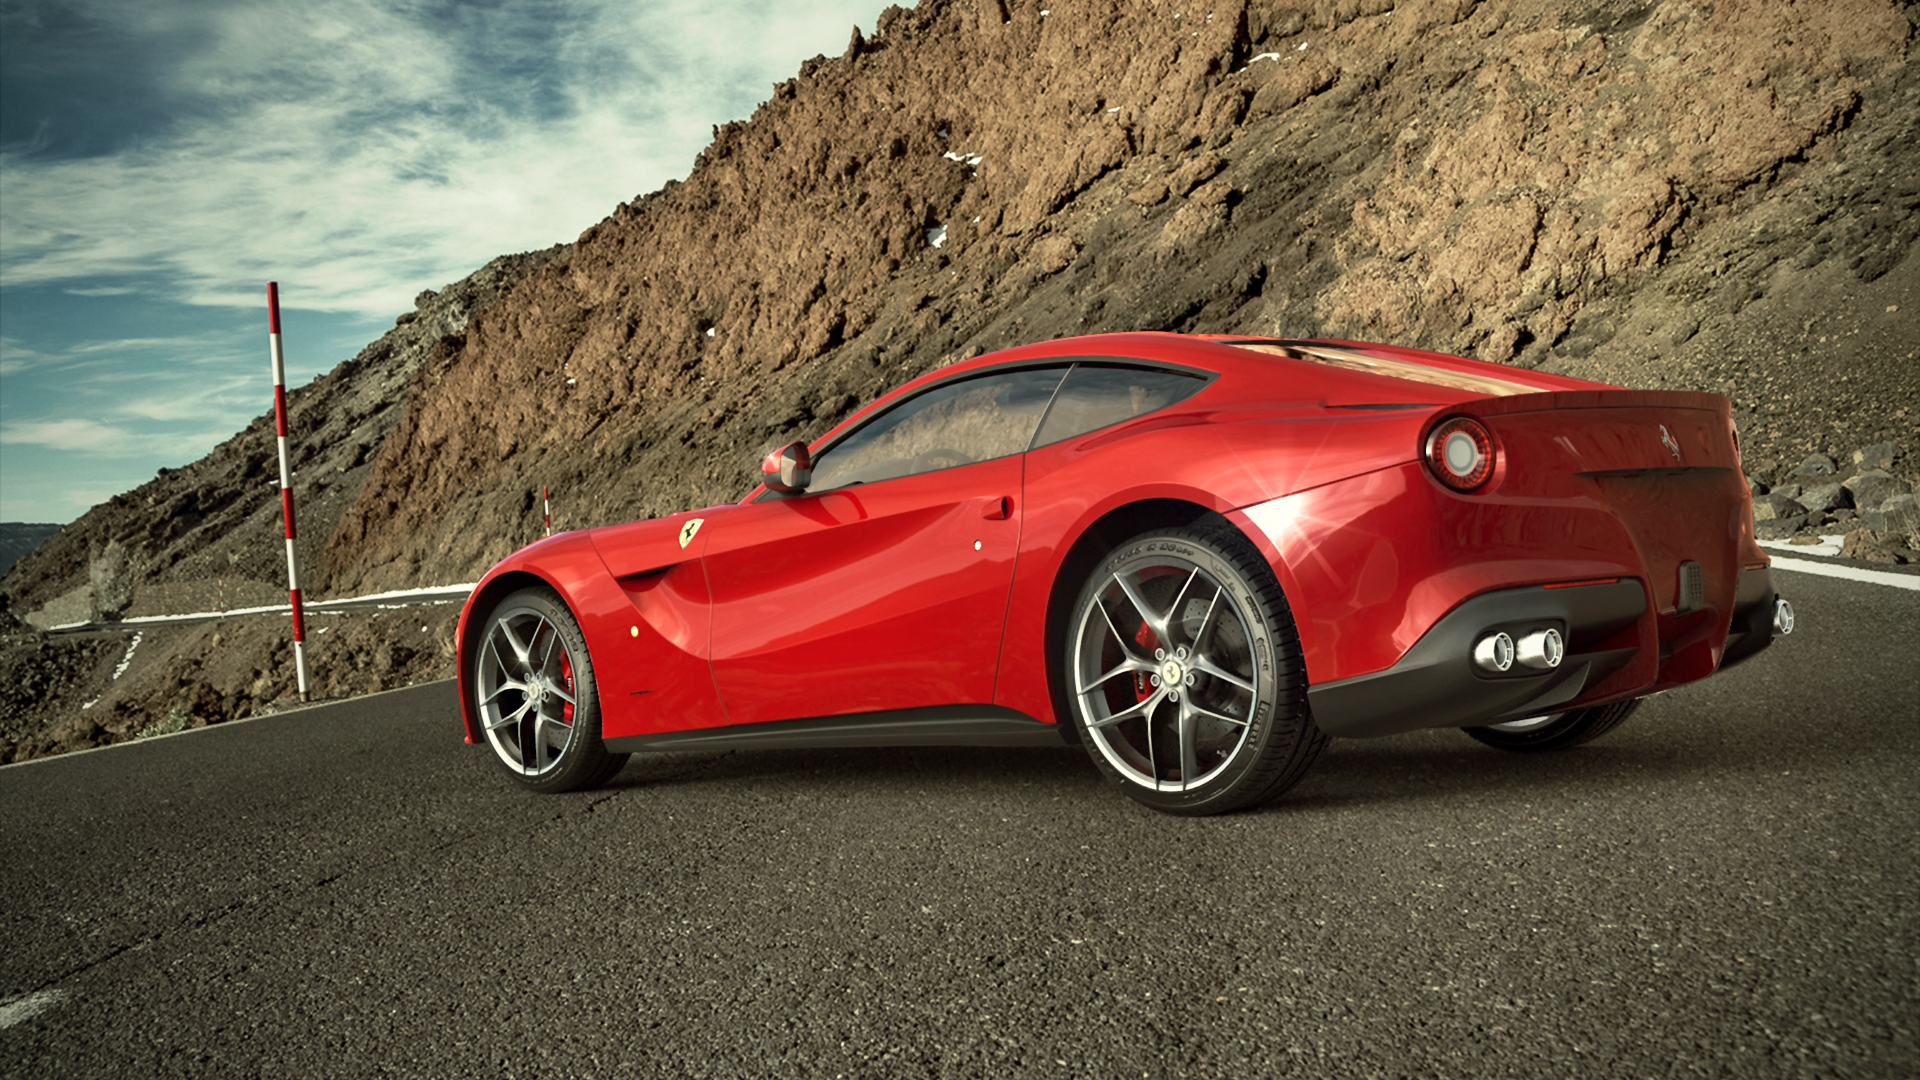 Ferrari F12 Berlinetta rendered in KeyShot by Sergio